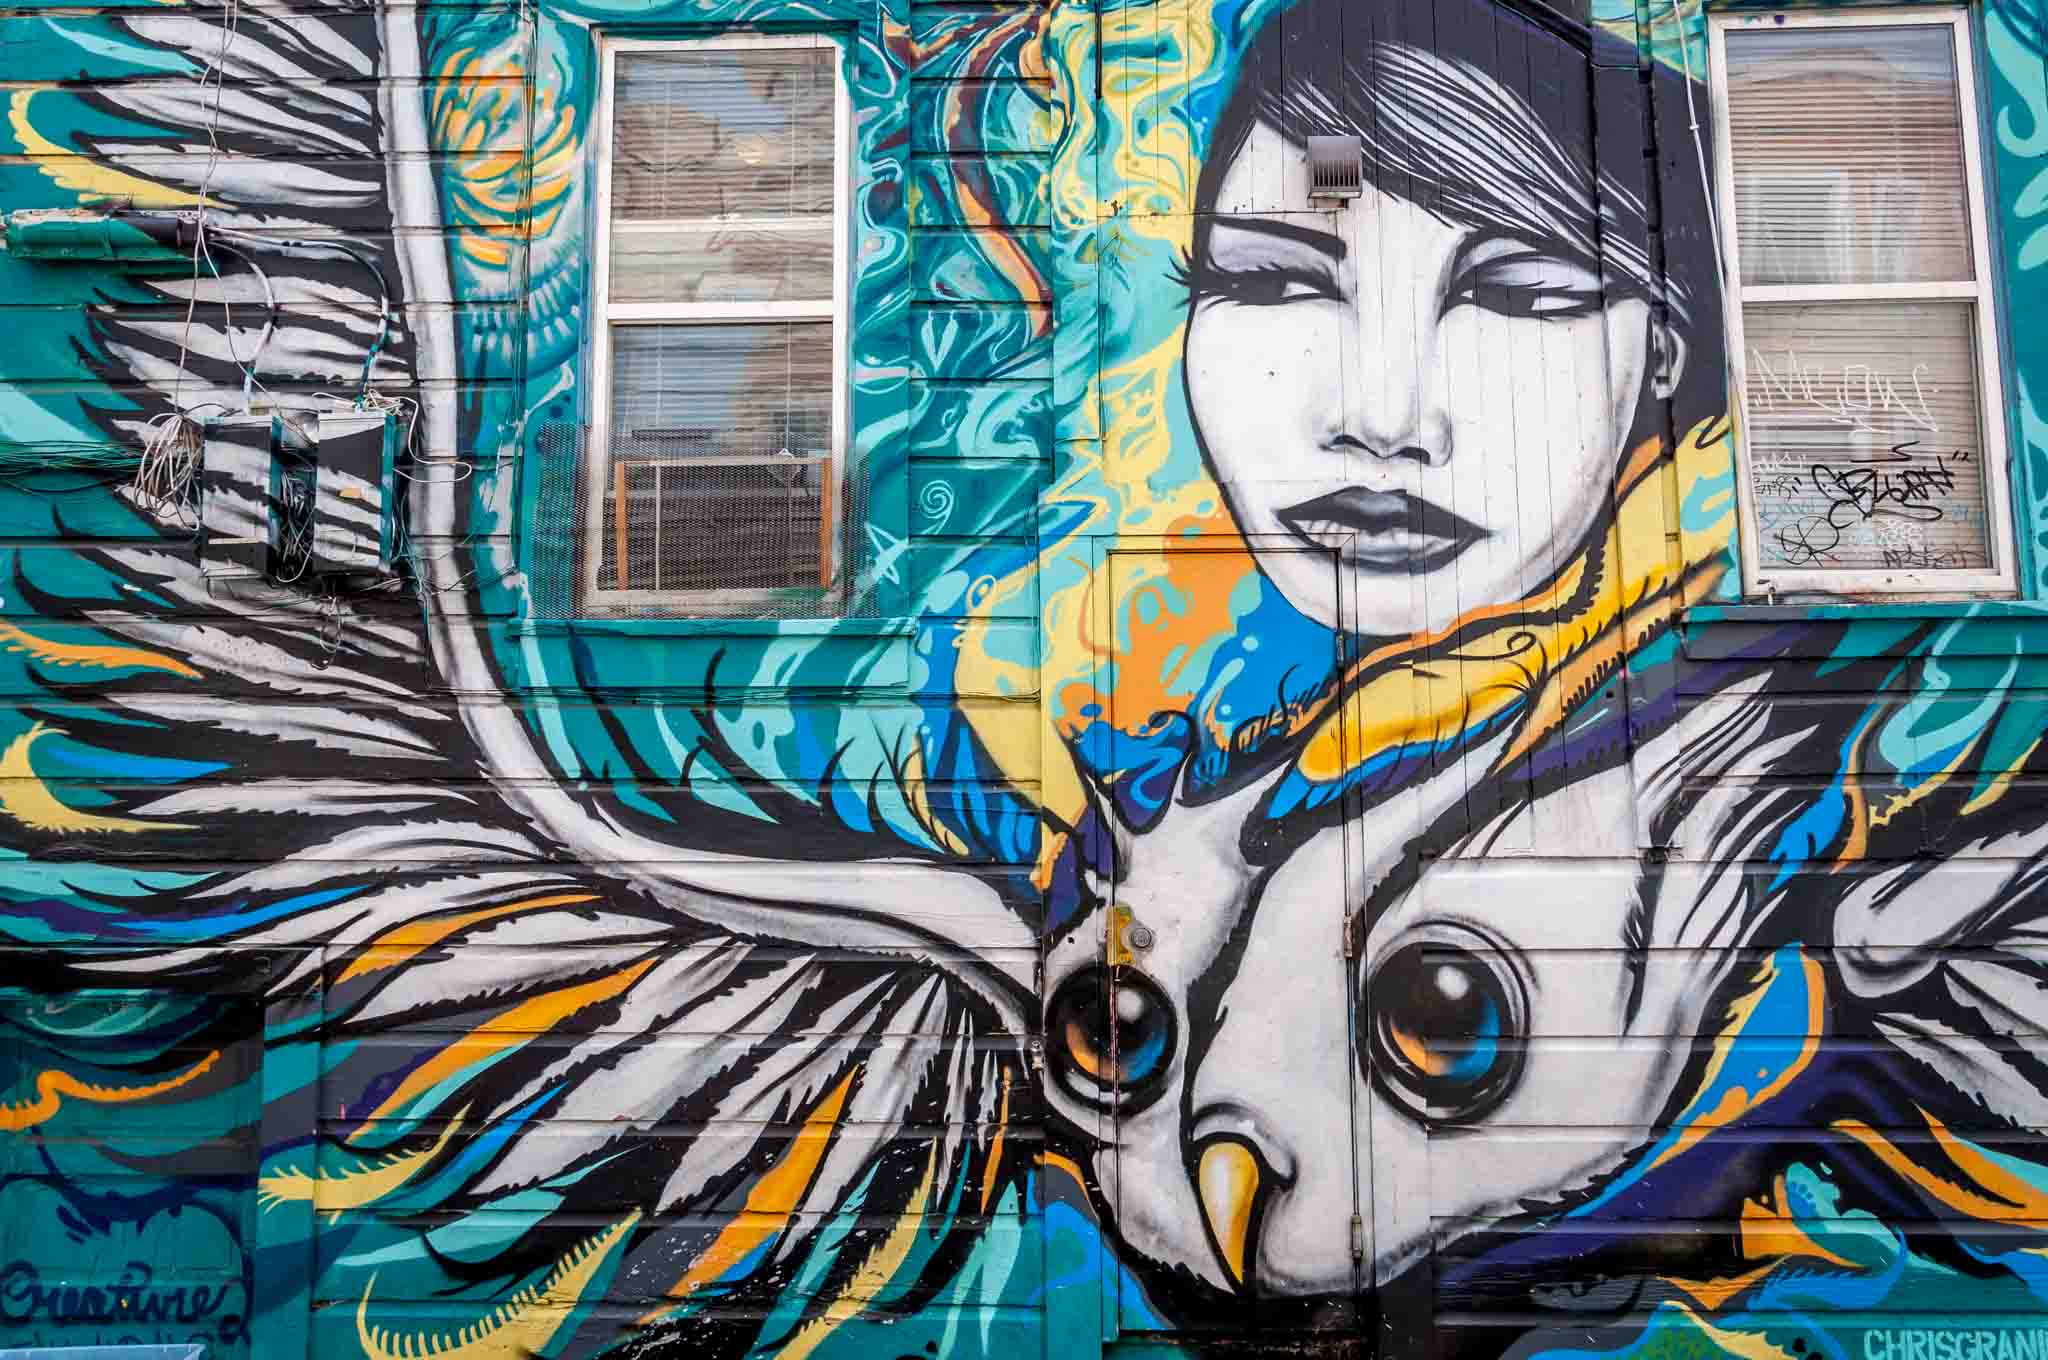 Street art mural in Clarion Alley of a woman and bird